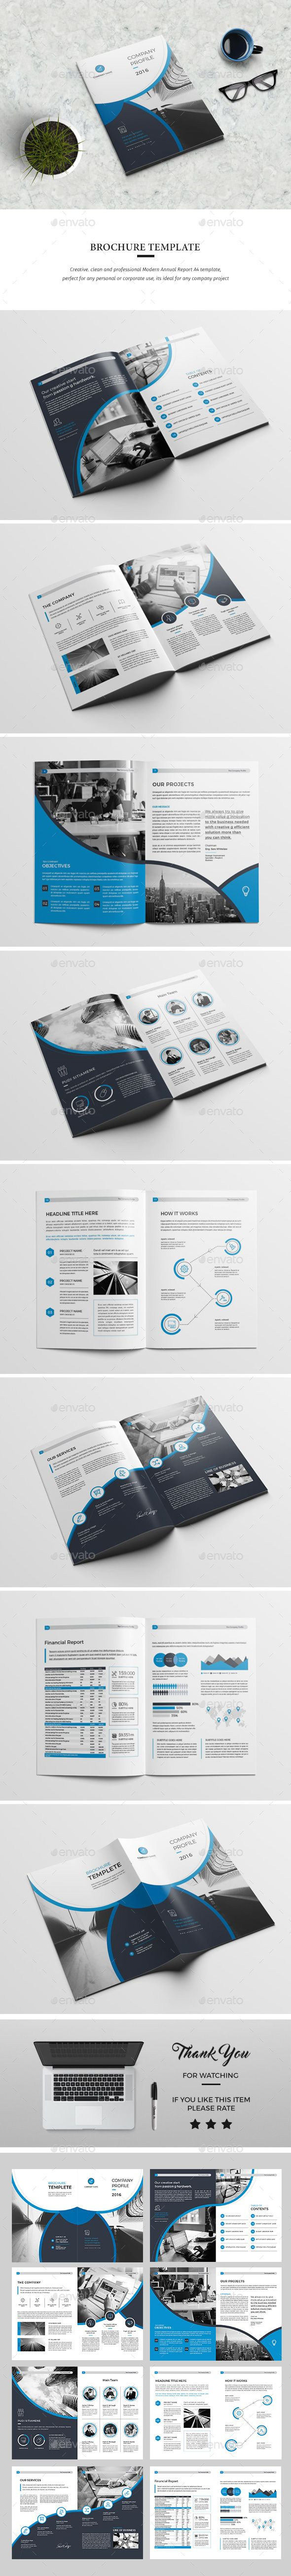 Business Plan - #Corporate #Brochures Download here: https://graphicriver.net/item/business-plan/19376095?ref=alena994